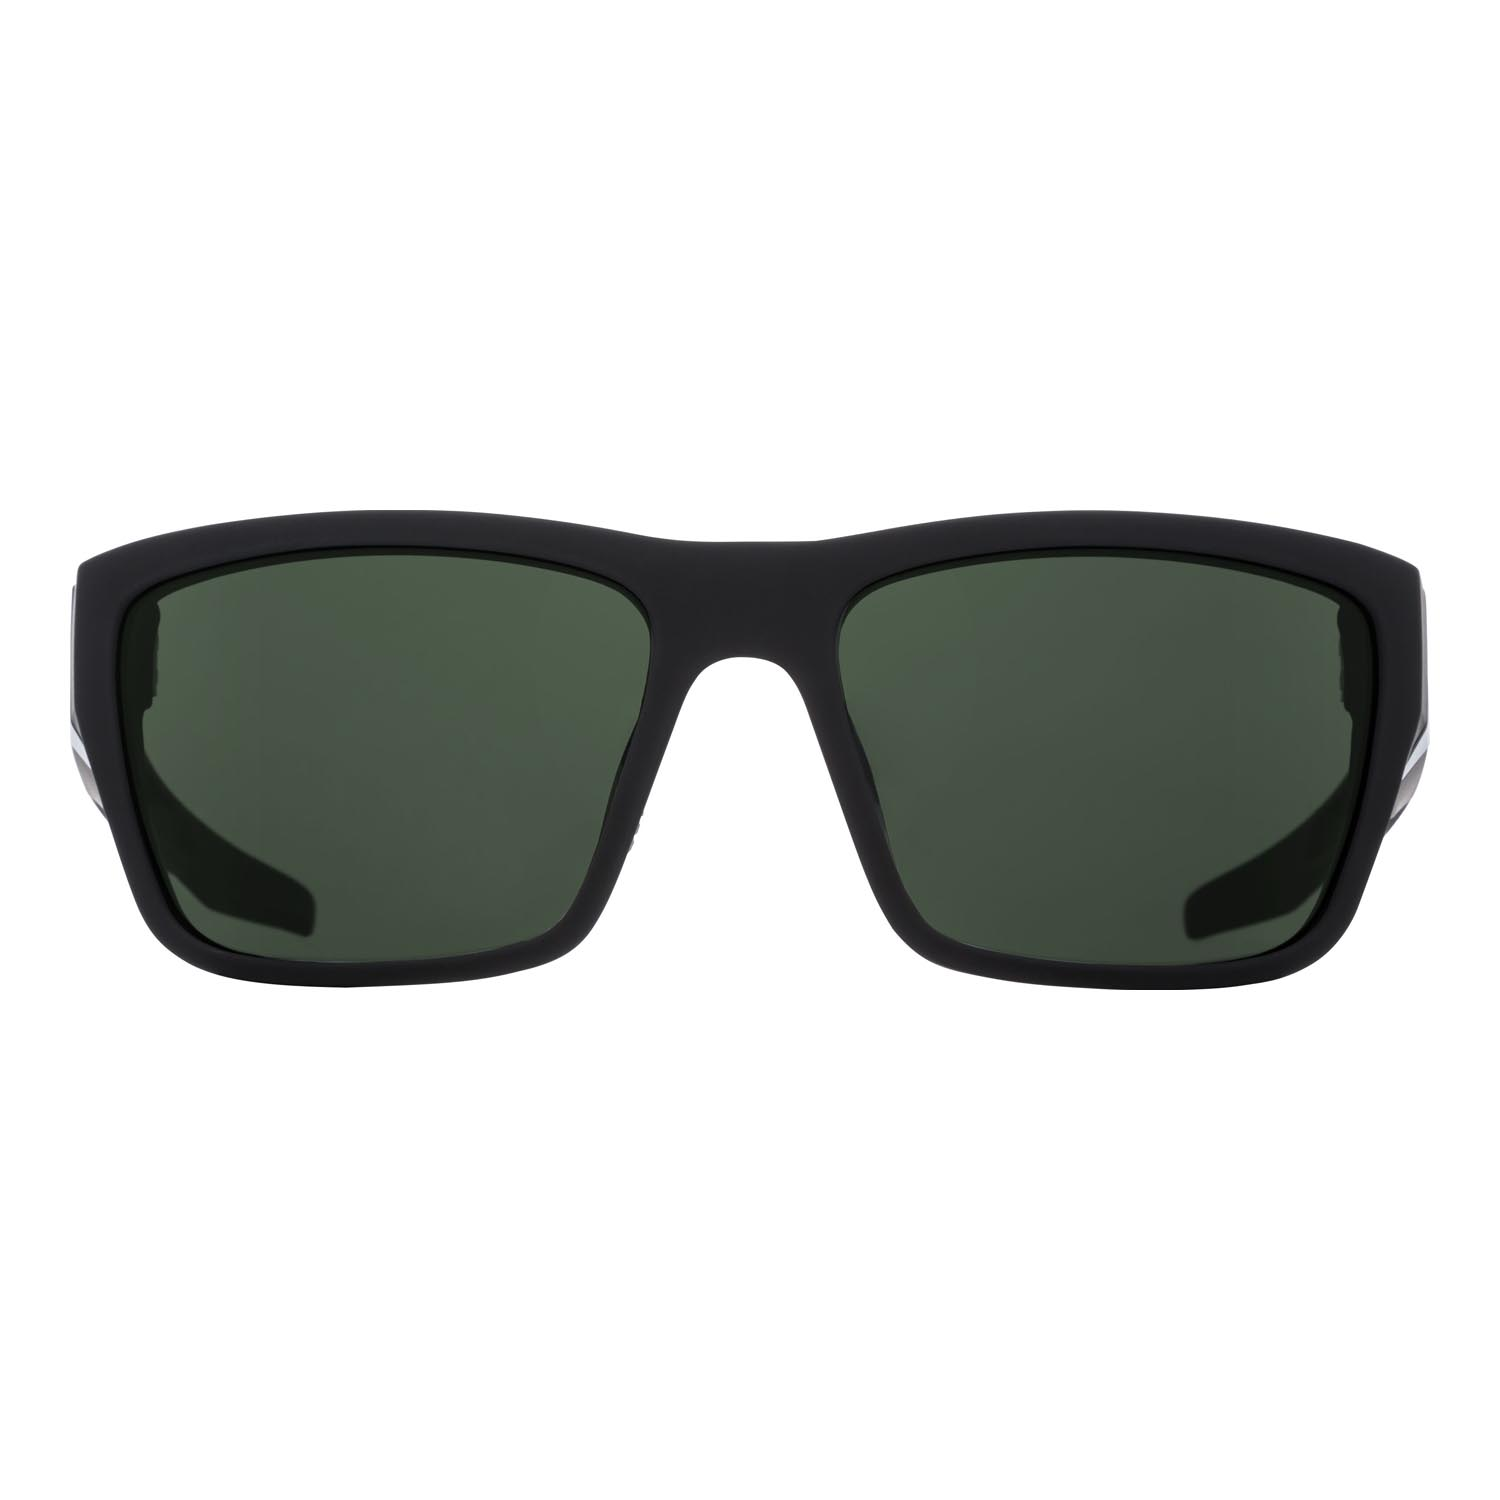 Spy Sunglasses Dirty Mo 2 in soft matte black with polarized lenses